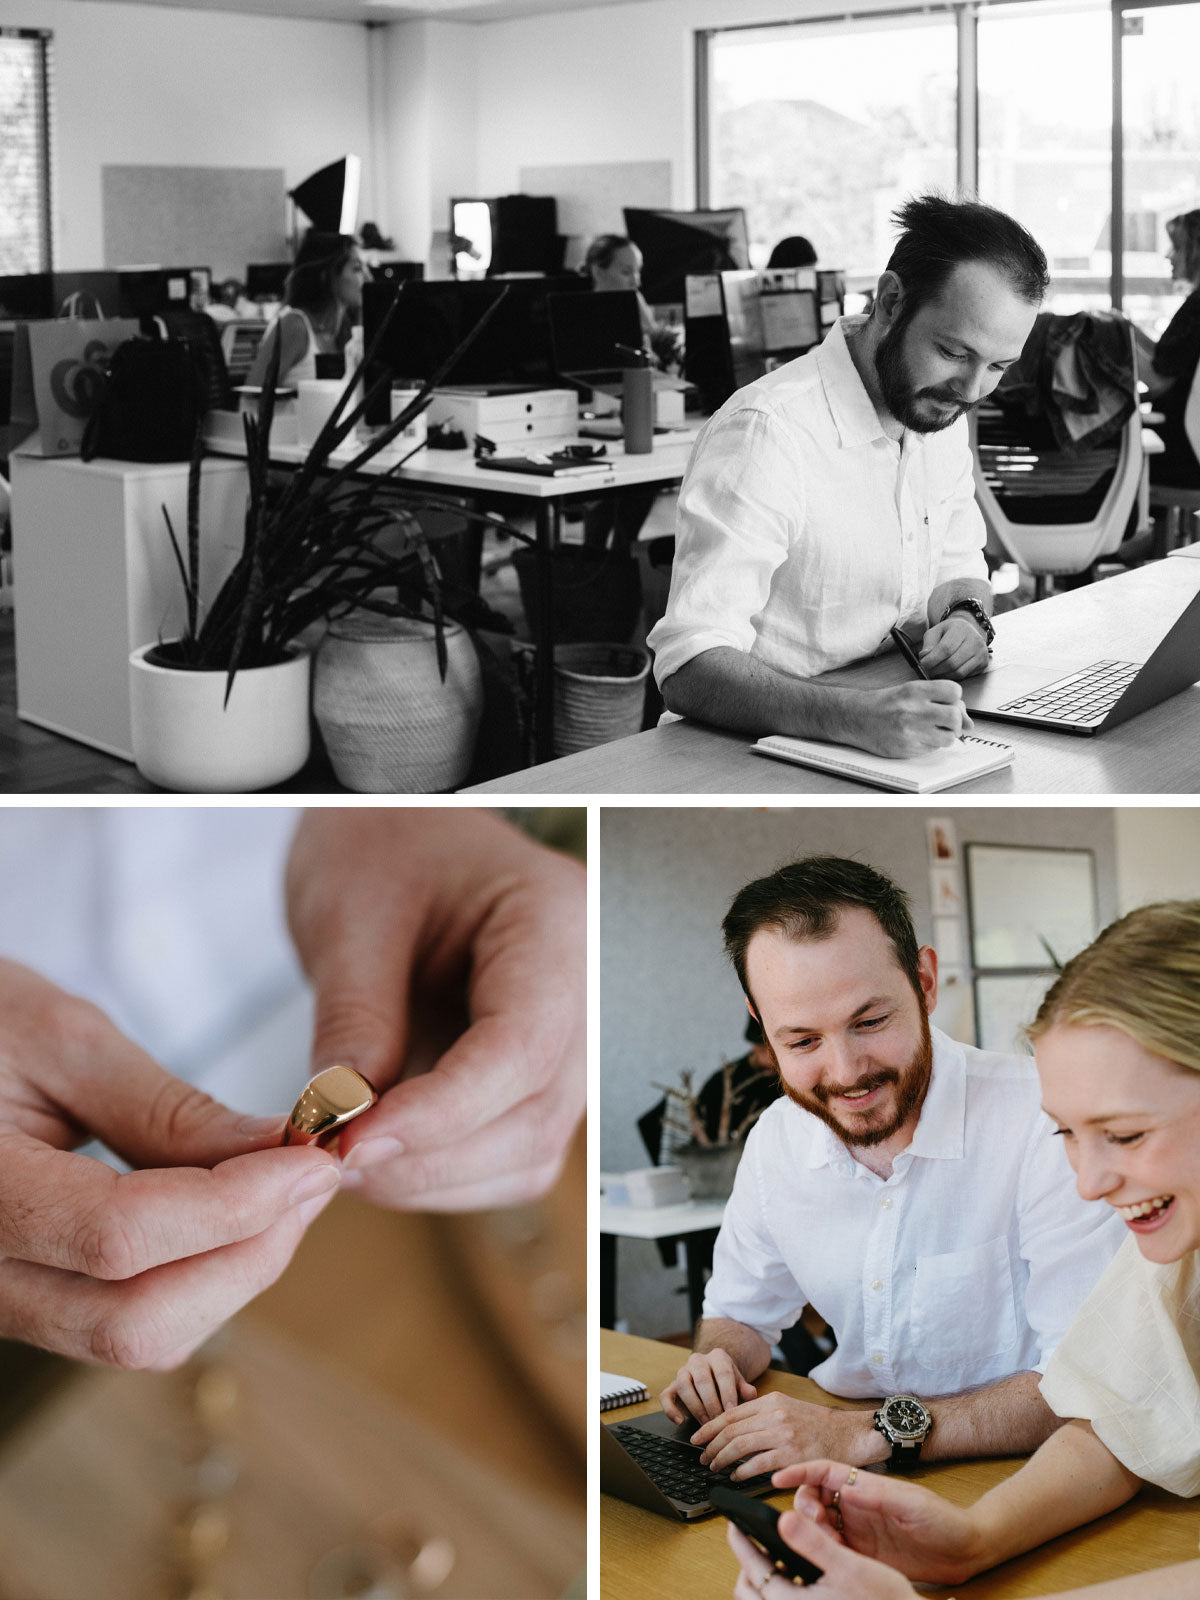 Andrew, sitting at a desk writing in his notebook at the Natalie Marie head office, talking and laughing with a female coworker and showing a rose gold signet ring in the next image